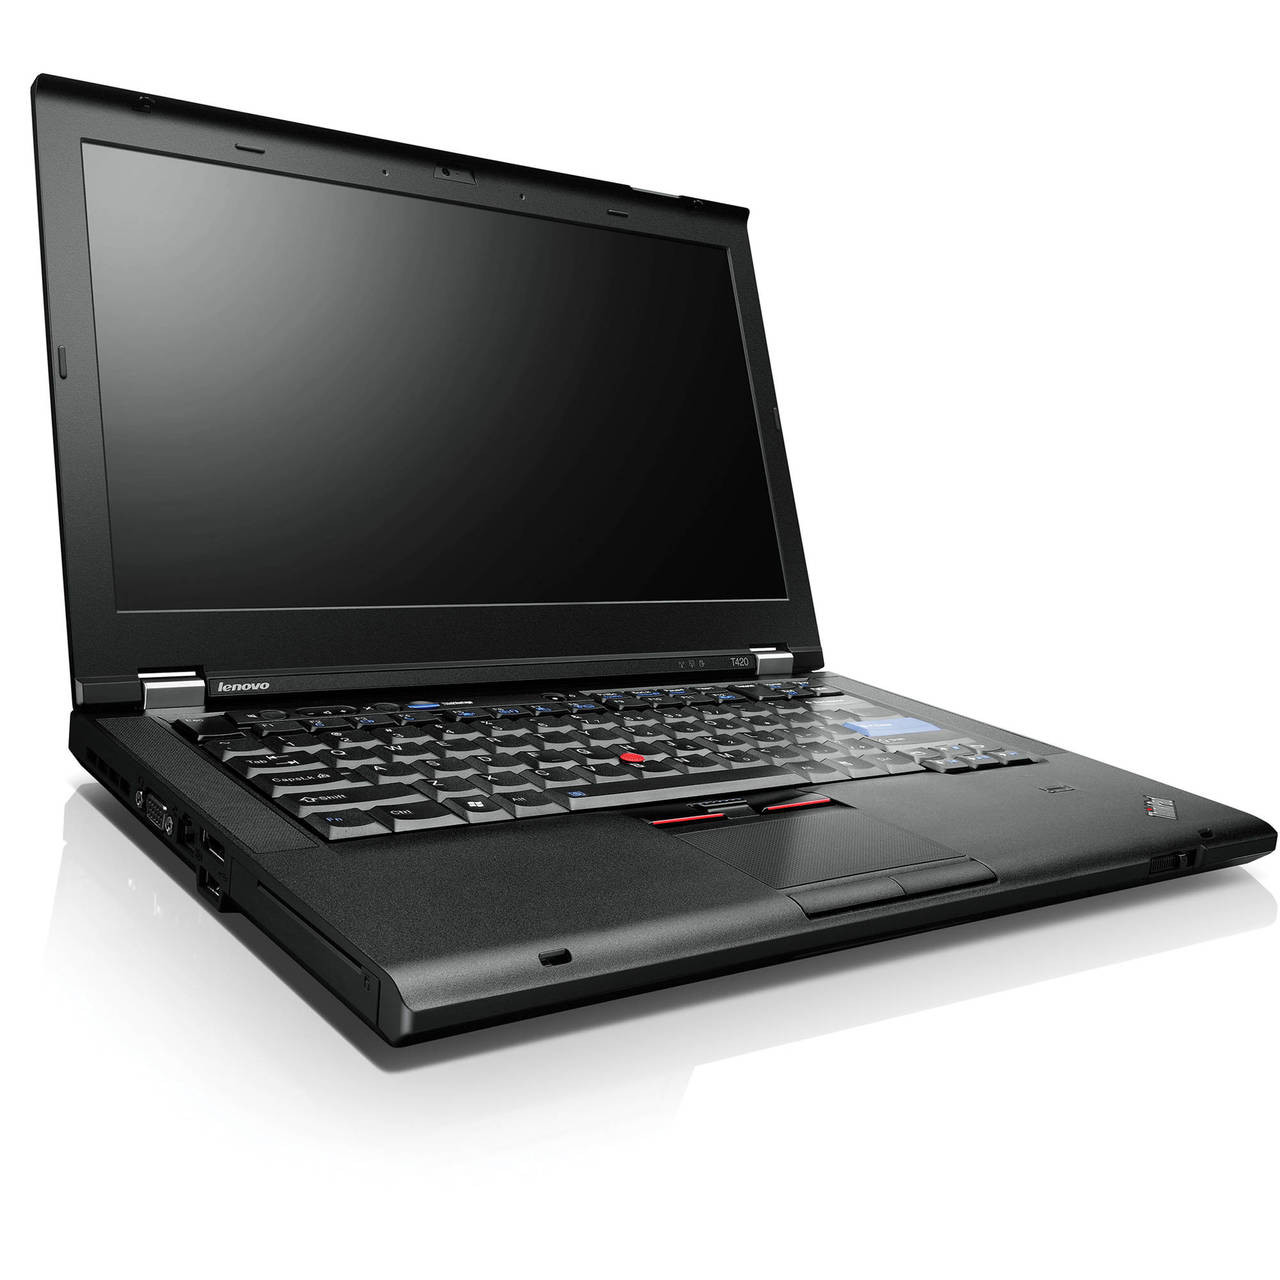 Lenovo ThinkPad T420 - Core i5 (Configure to Order)